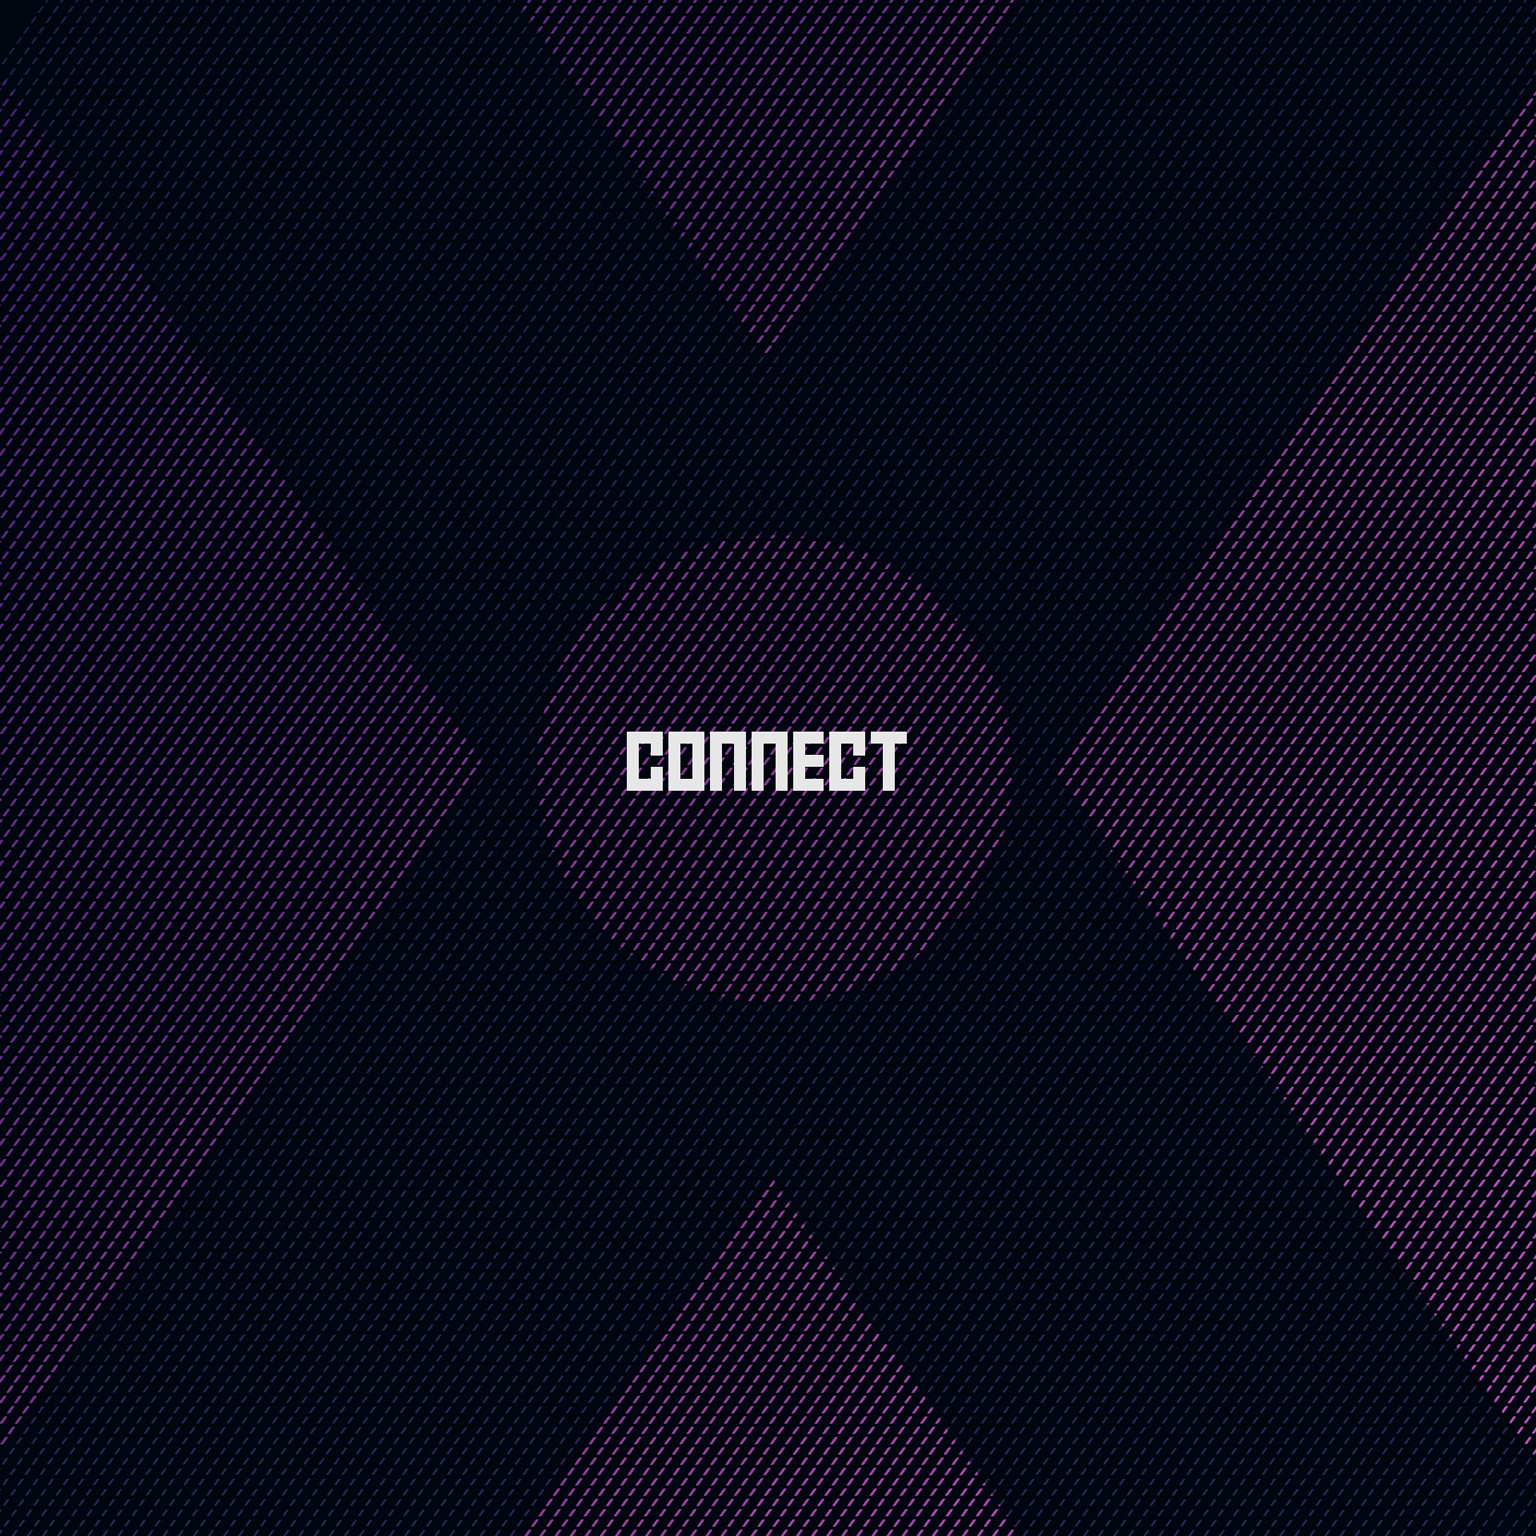 00Connect